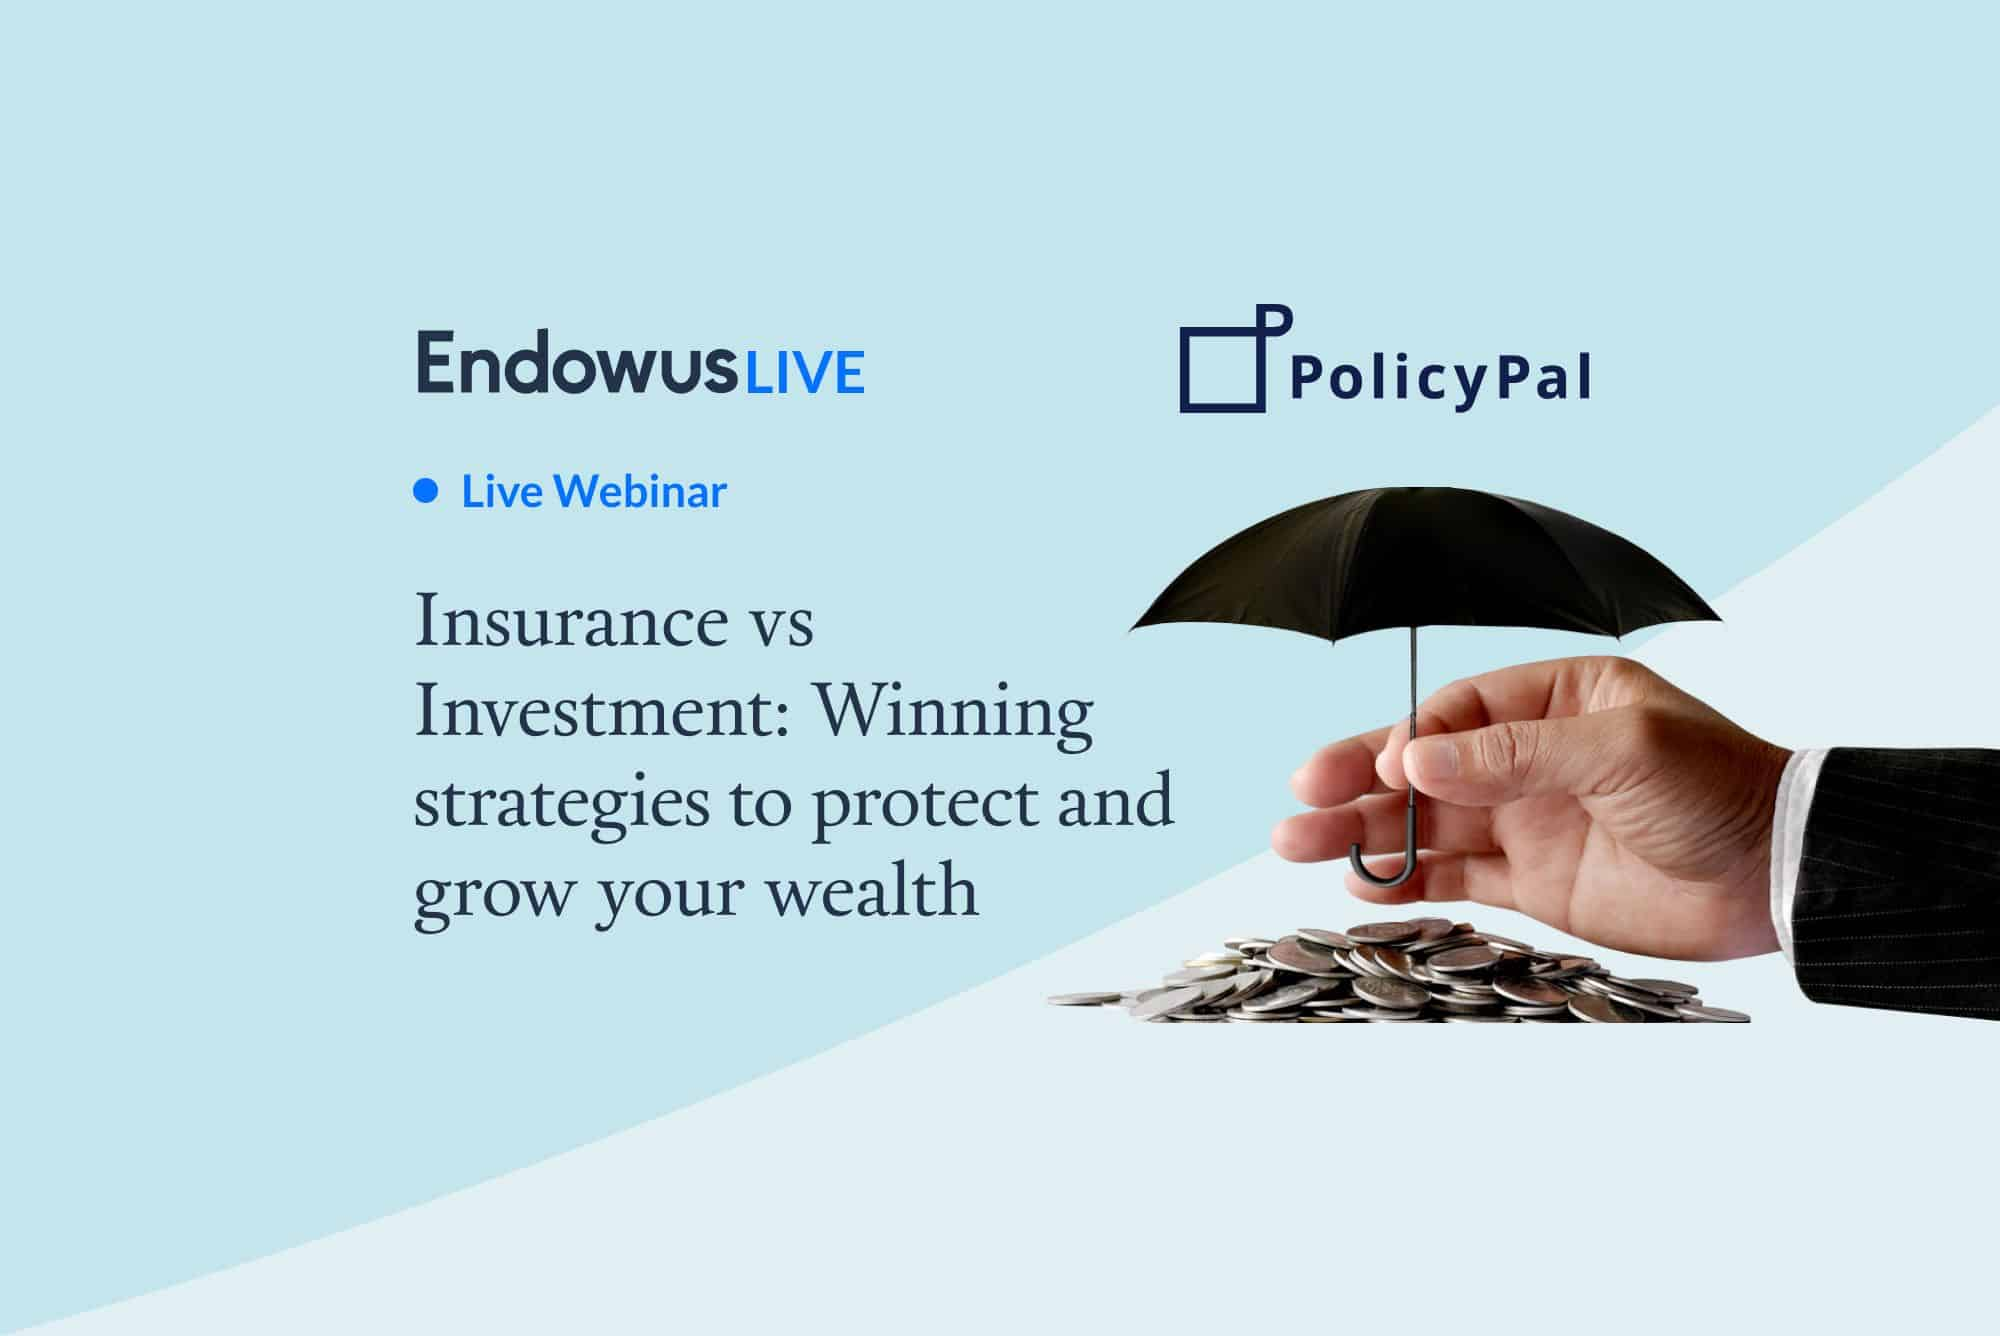 Webinar: Insurance vs Investment: Winning strategies to protect and grow your wealth